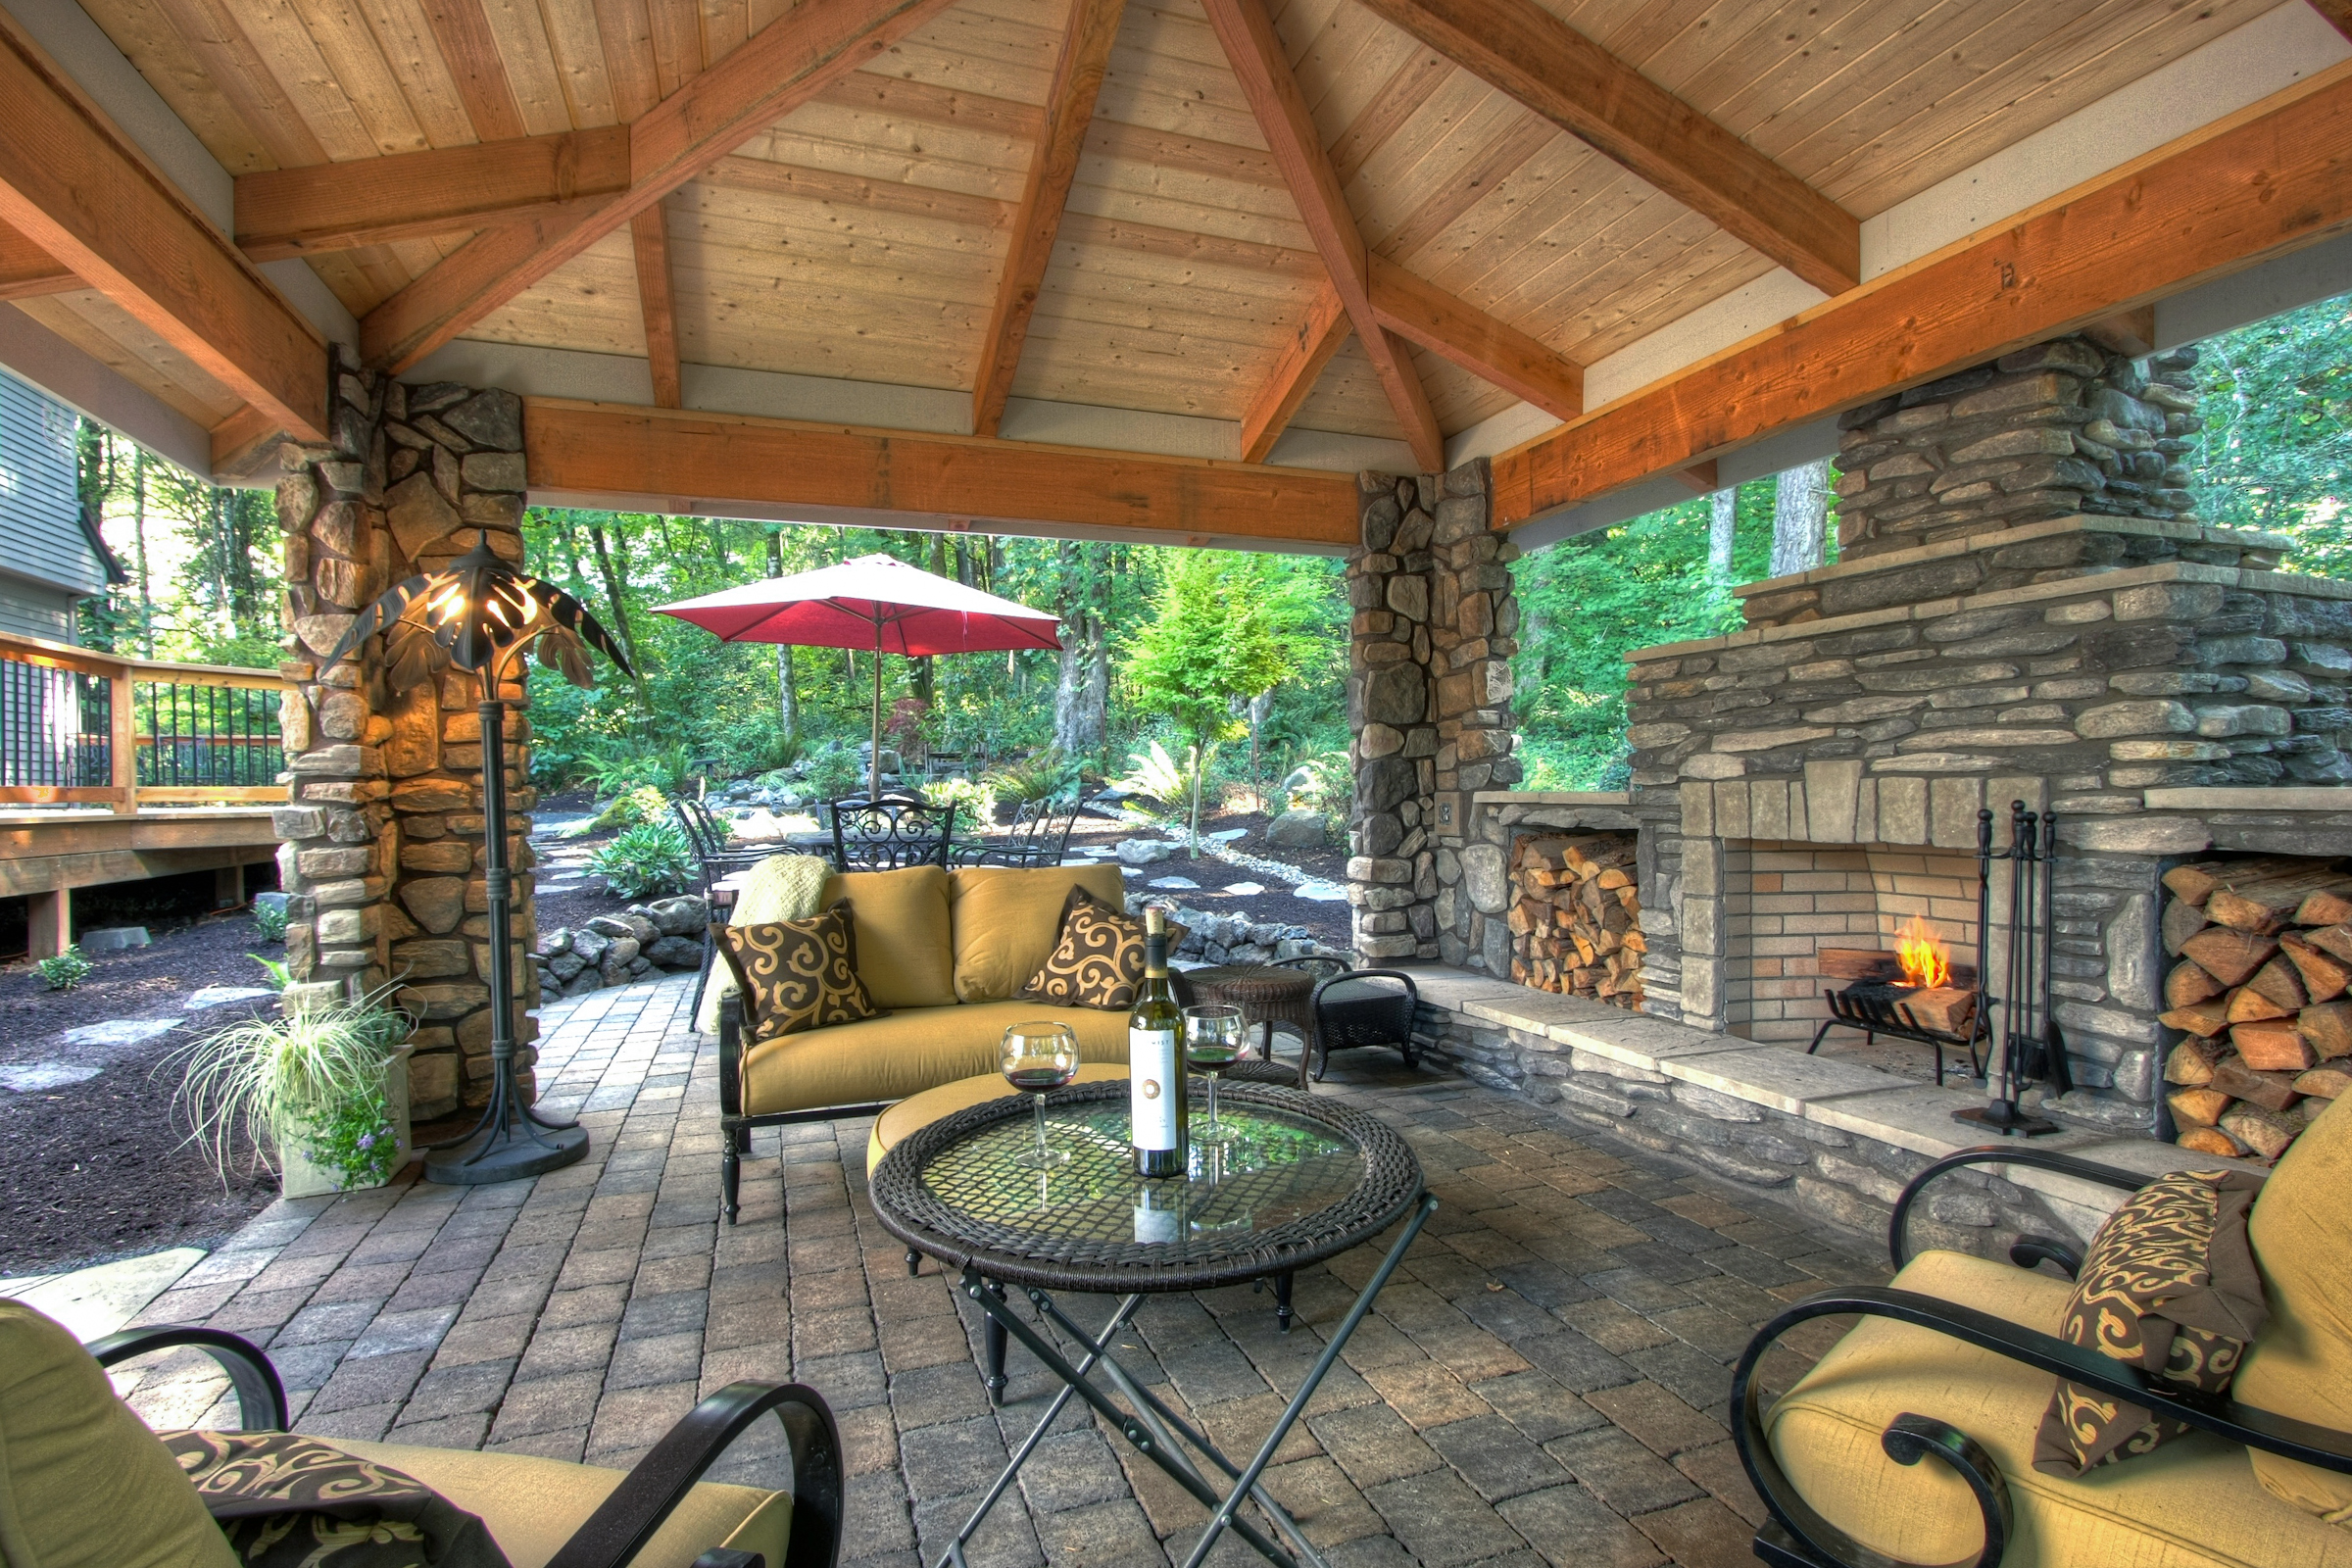 7266395b 735b 4ea8 954e b856a135ad99 Top Result 53 Inspirational Outside Stone Fireplace